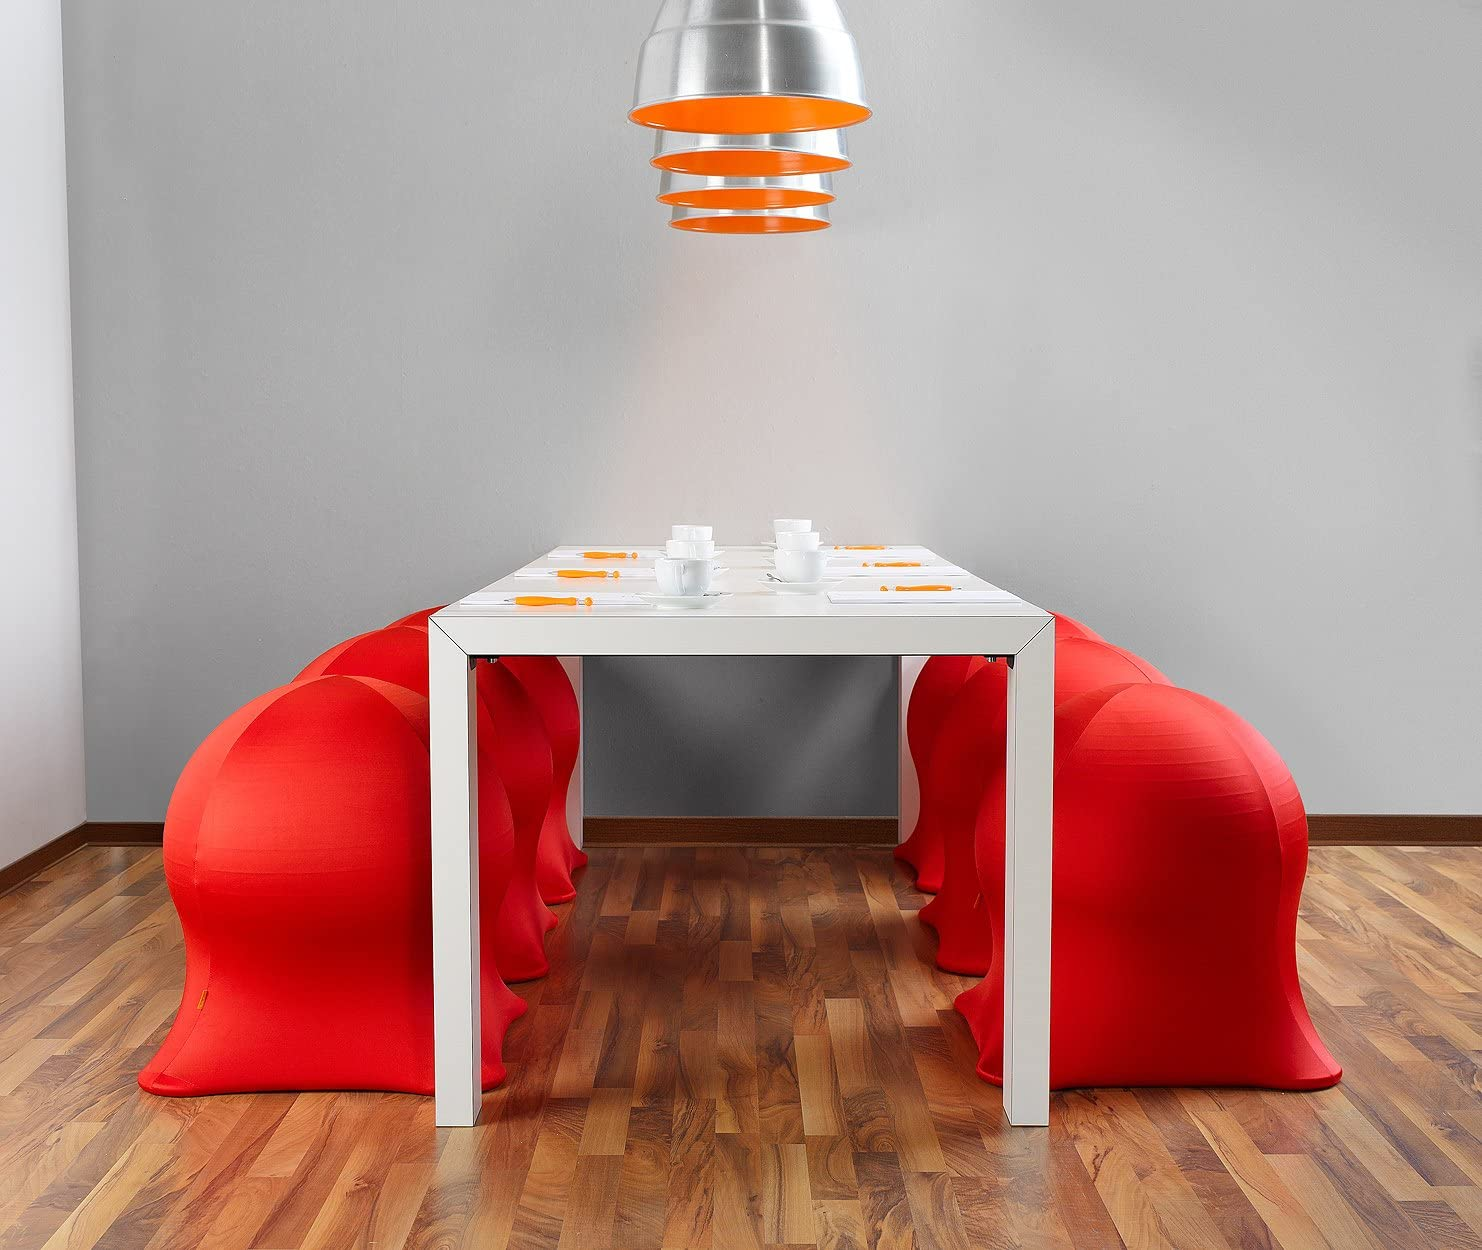 JellyFish Easychair Grand Tabouret Rouge